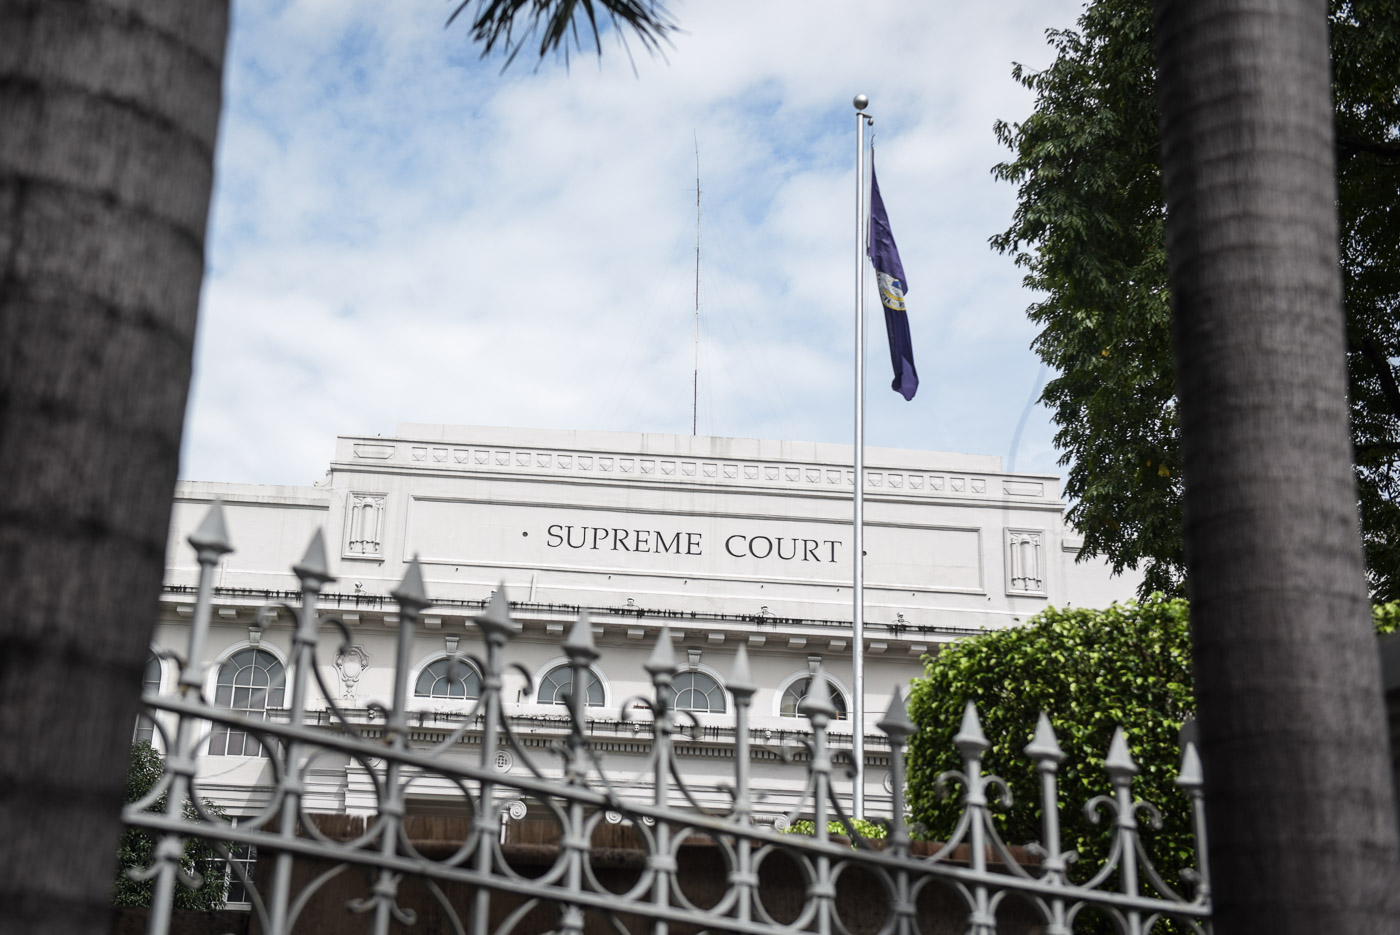 WARNING. The Supreme Court warns against disruptive behavior during the oath taking of new lawyers on June 1, 2018. Photo by Rappler